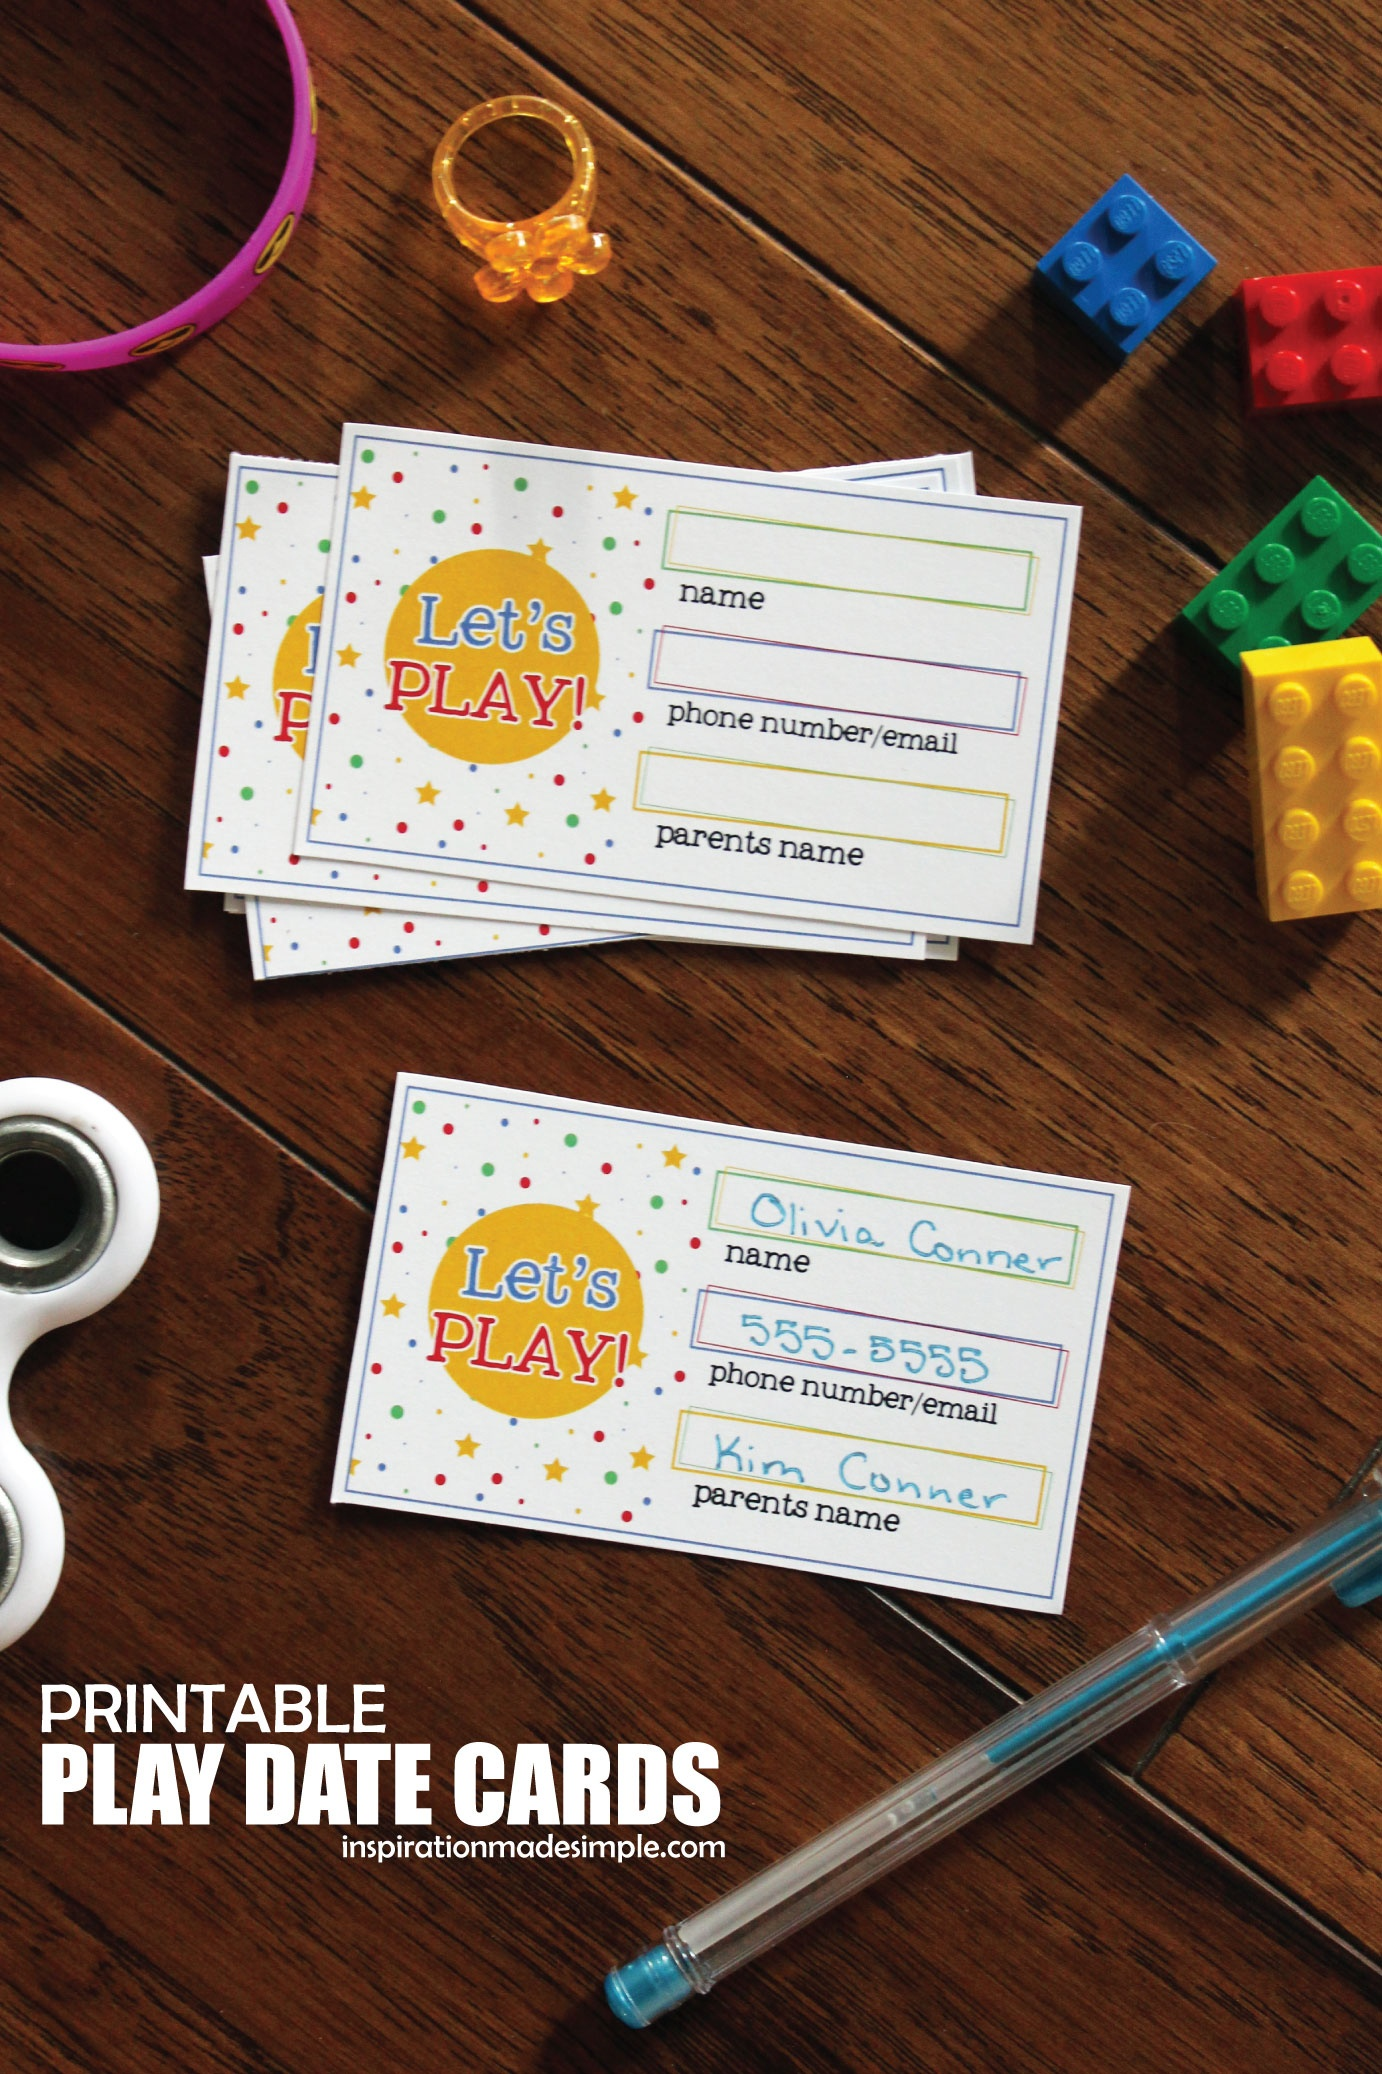 Printable Play Date Cards For Kids - Inspiration Made Simple - Play Date Invitations Free Printable